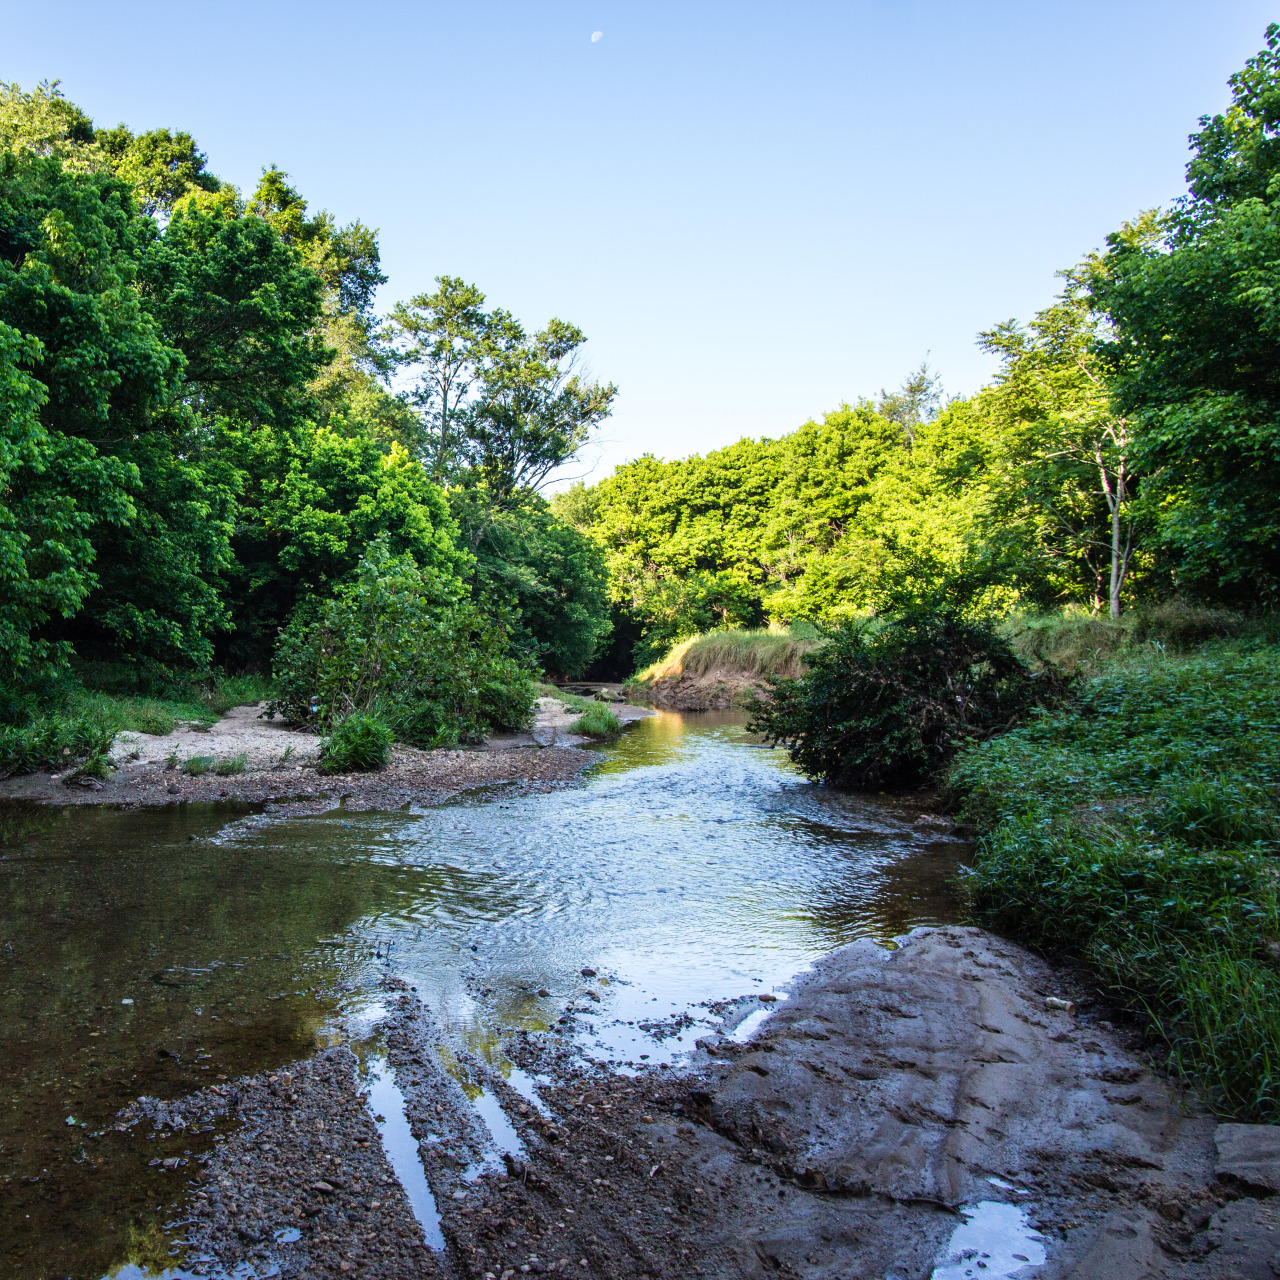 Intrenchment Creek, June 7, 2015